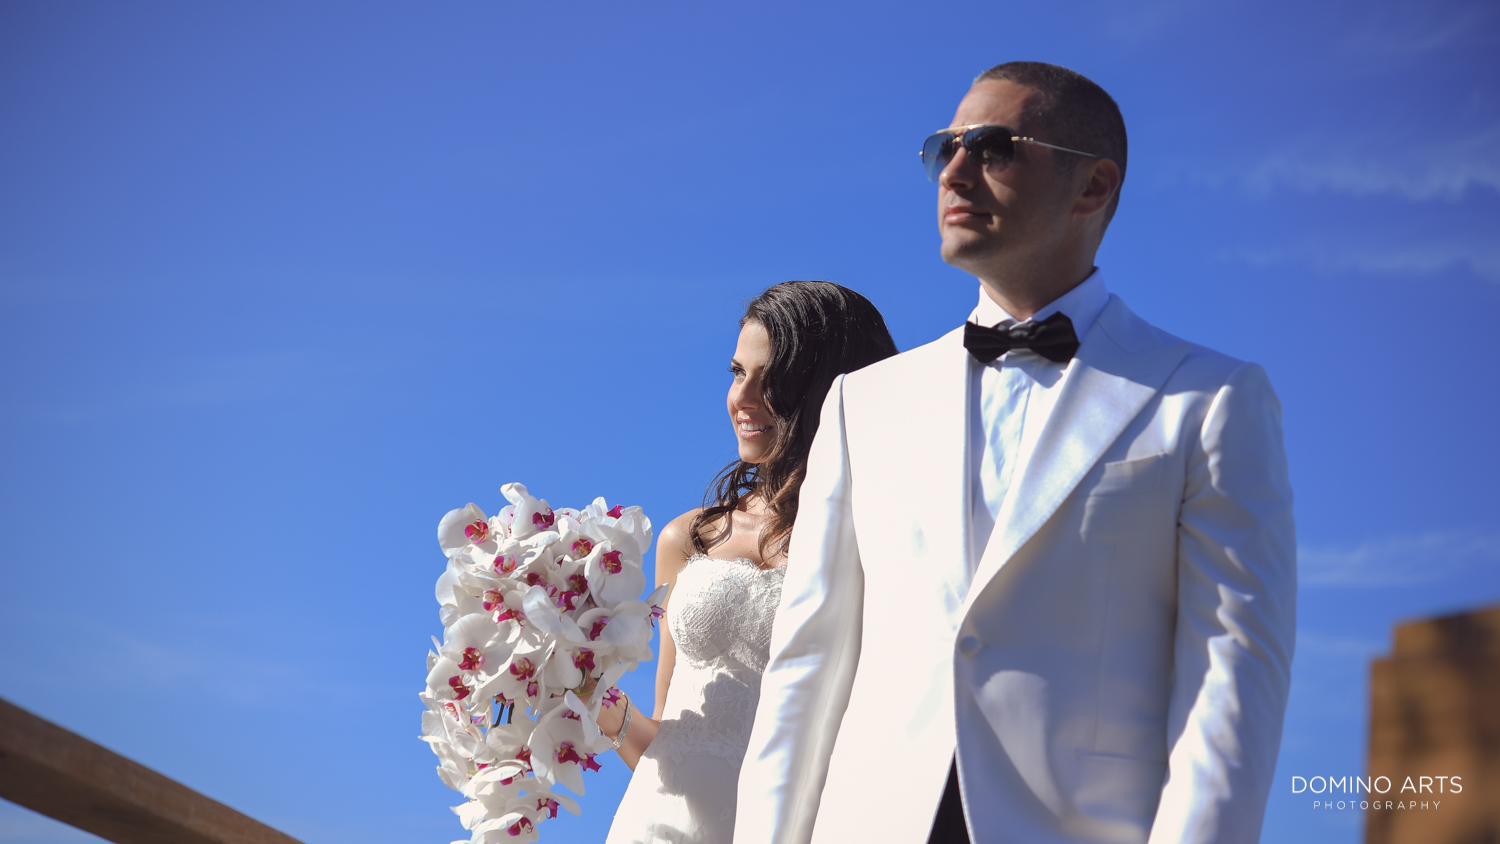 Luxury destination wedding pictures of bride and groom at One&Only Ocean Club Bahamas